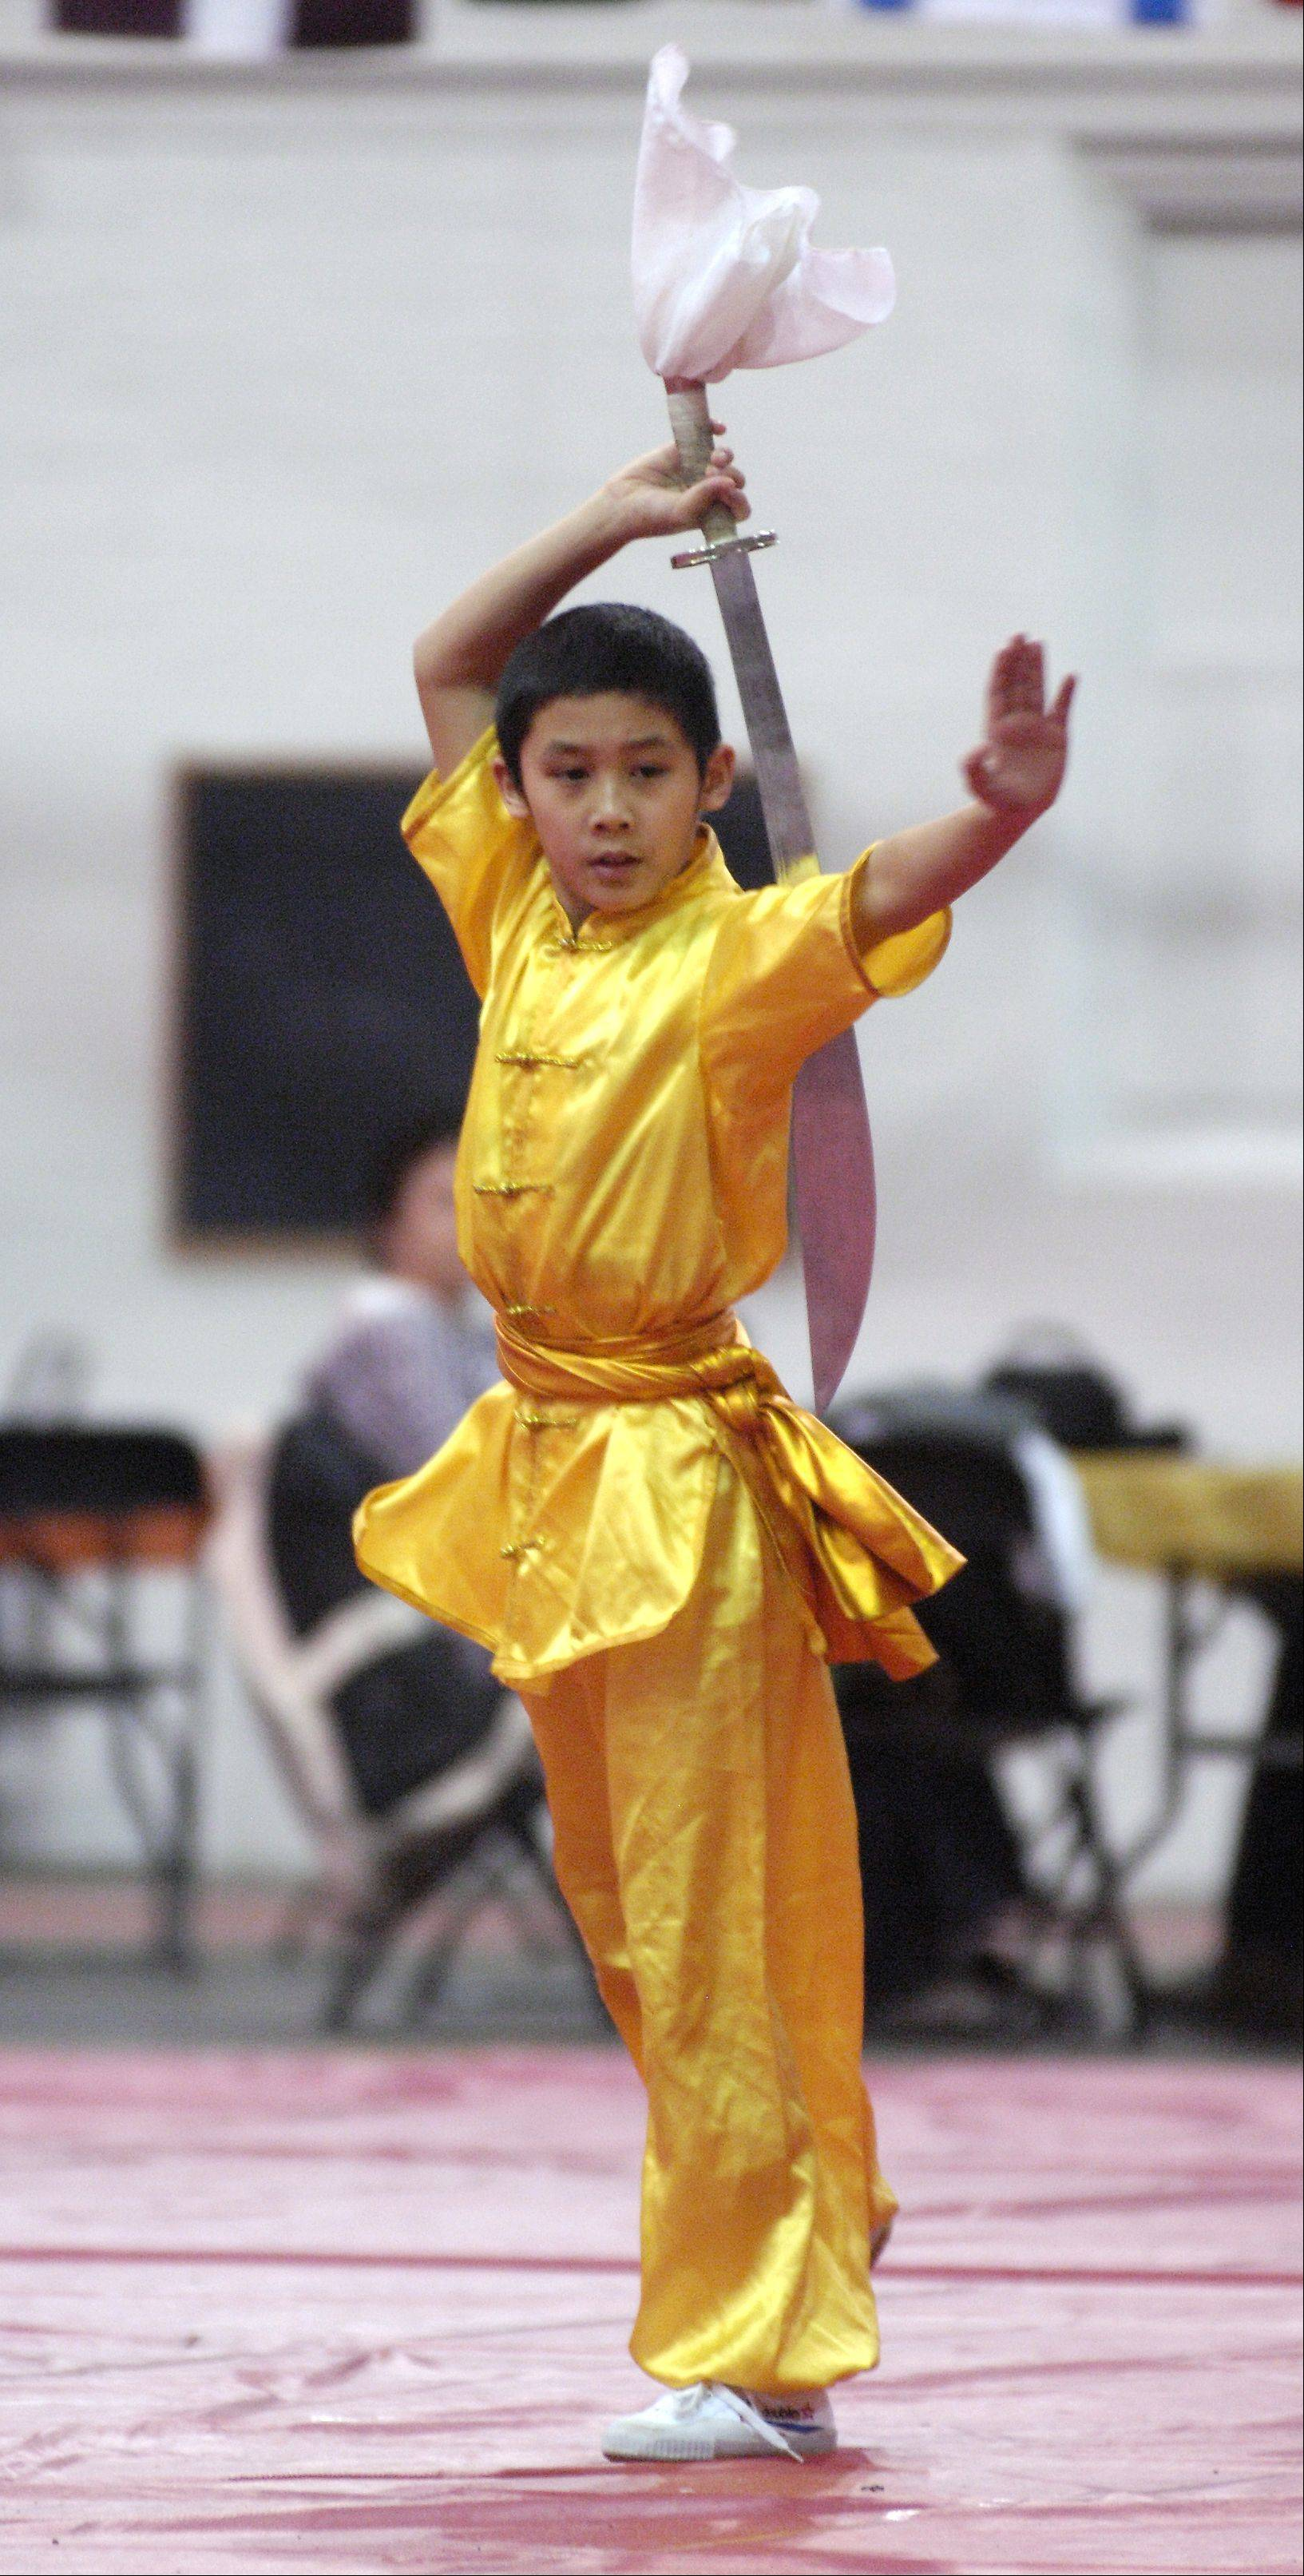 Penwille Chen, 10, of Woodridge performs Shaolin Kung Fu on Sunday during North Central College's 17th annual International Festival in the Naperville college's Merner Field House Naperville.